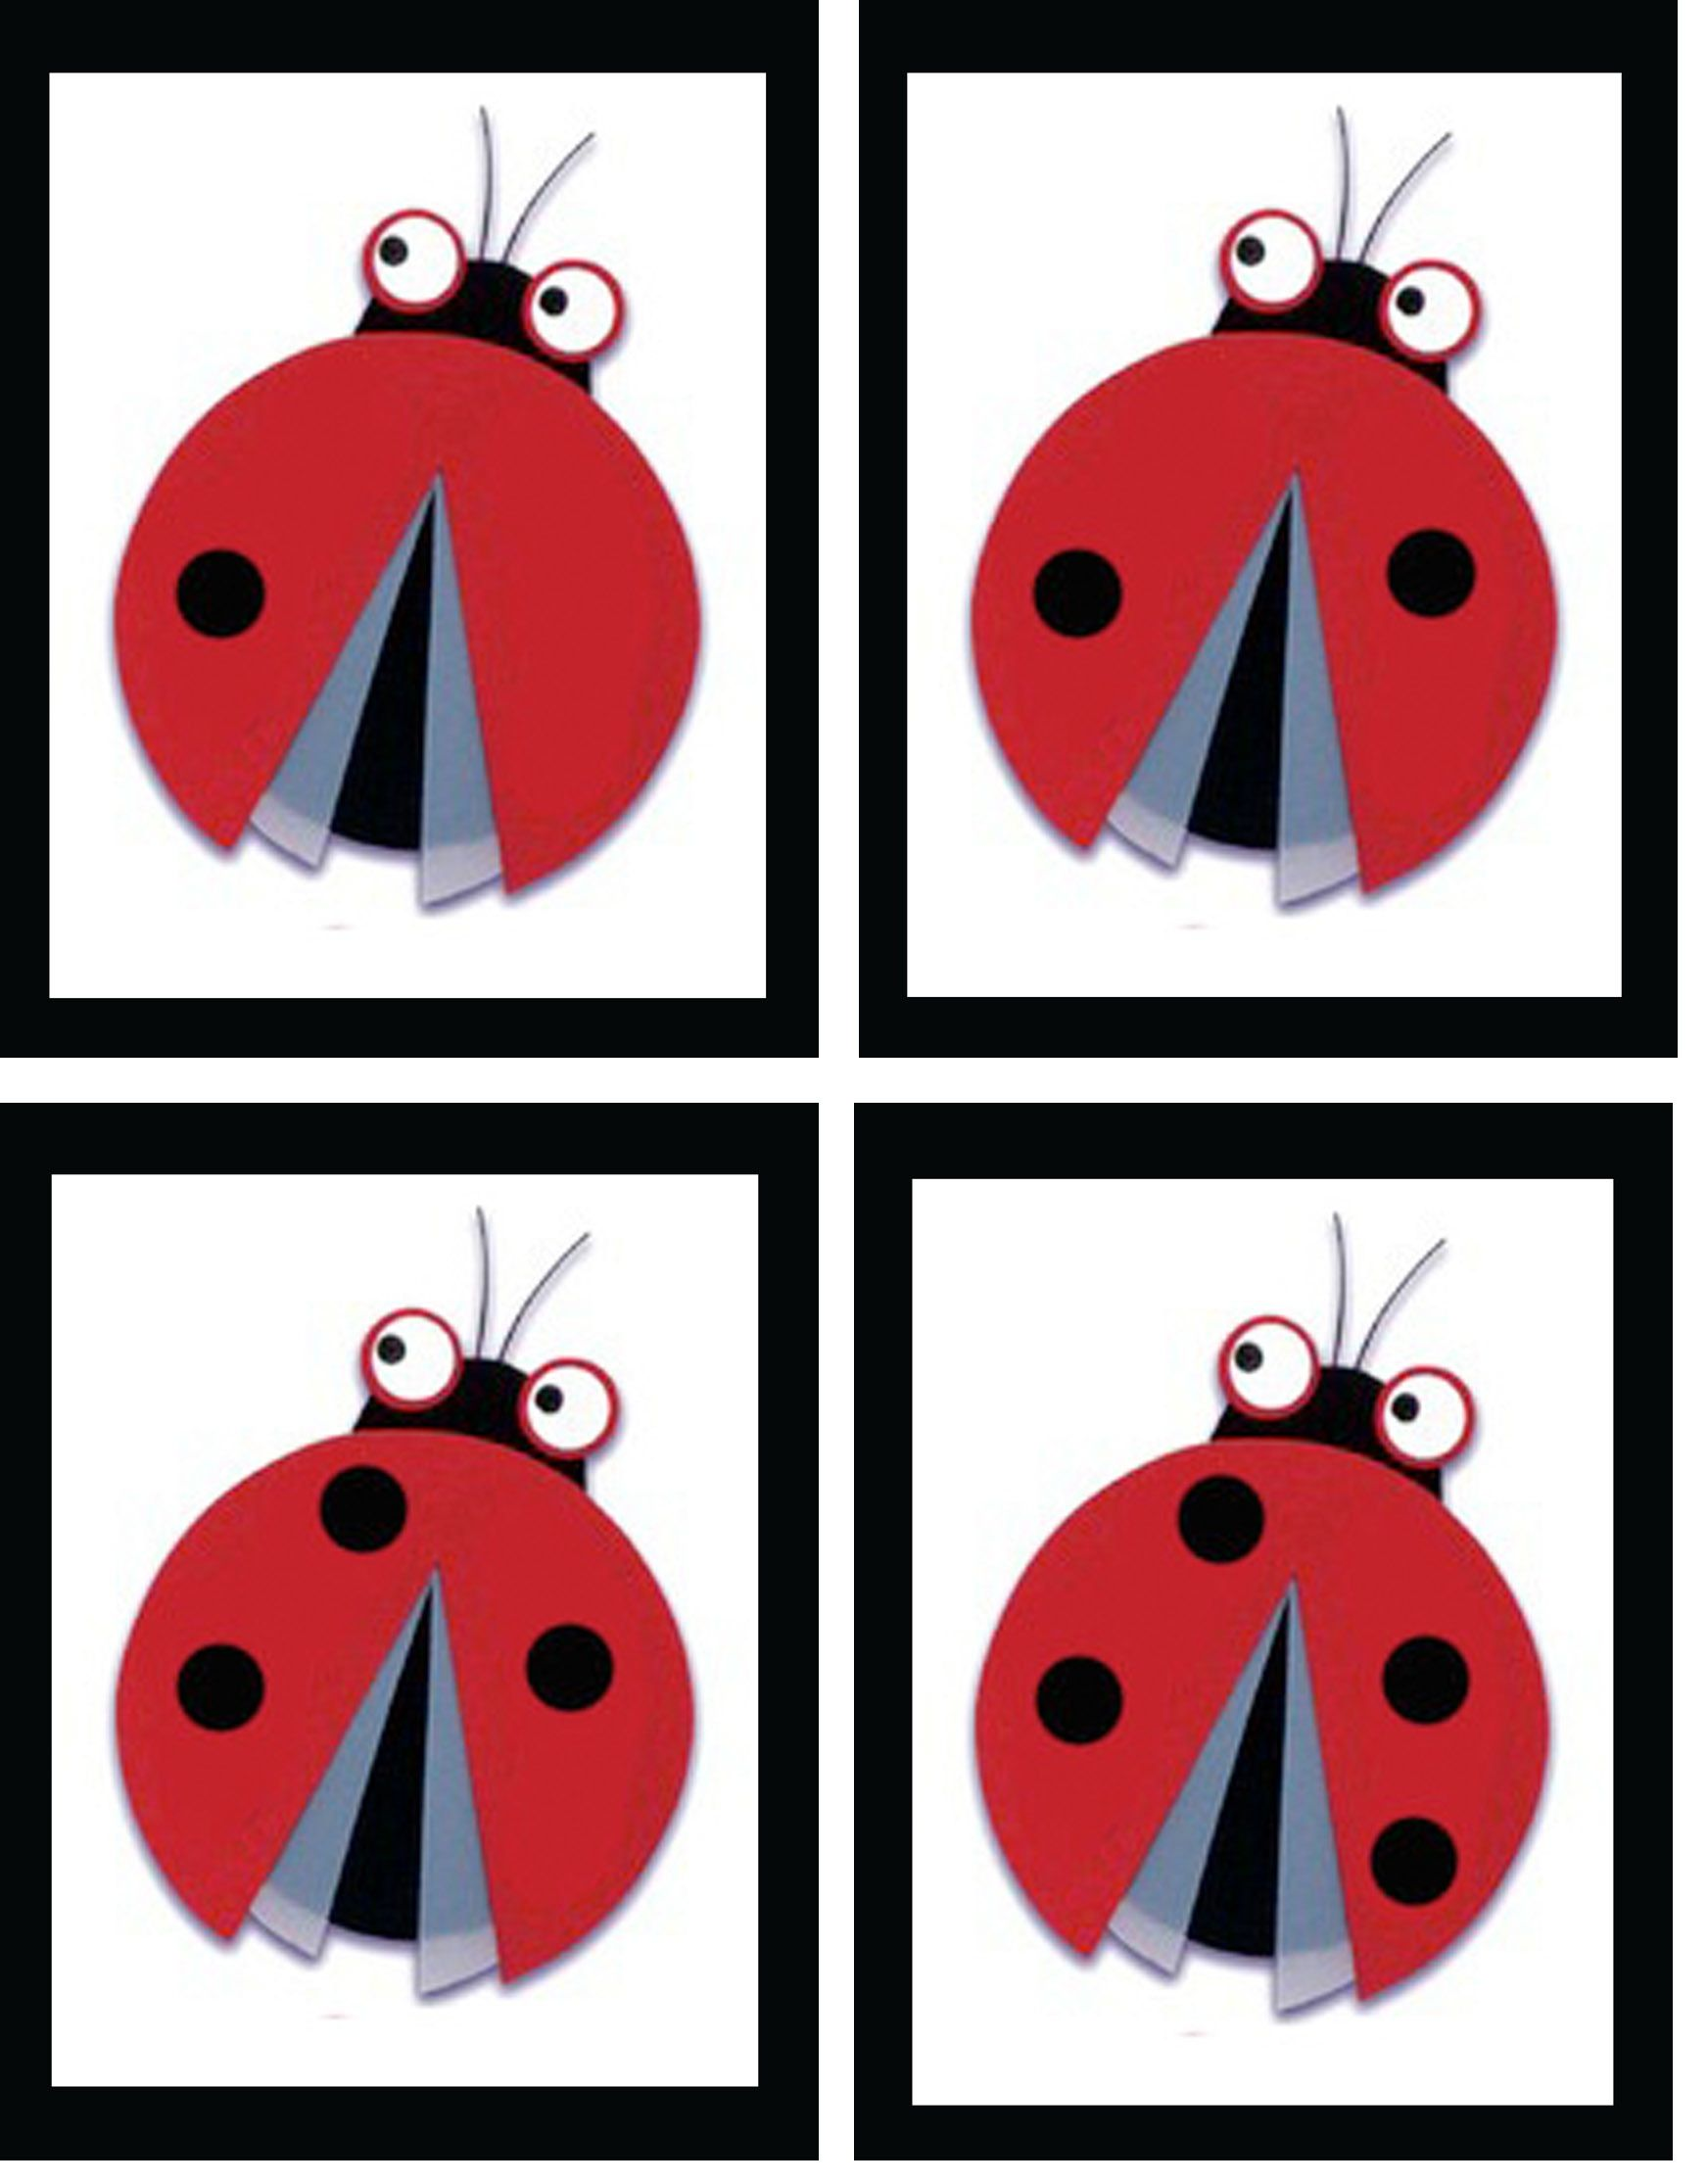 A Little Ladybug Math Match The Numeral With The Correct Number Of Ladybug Dots